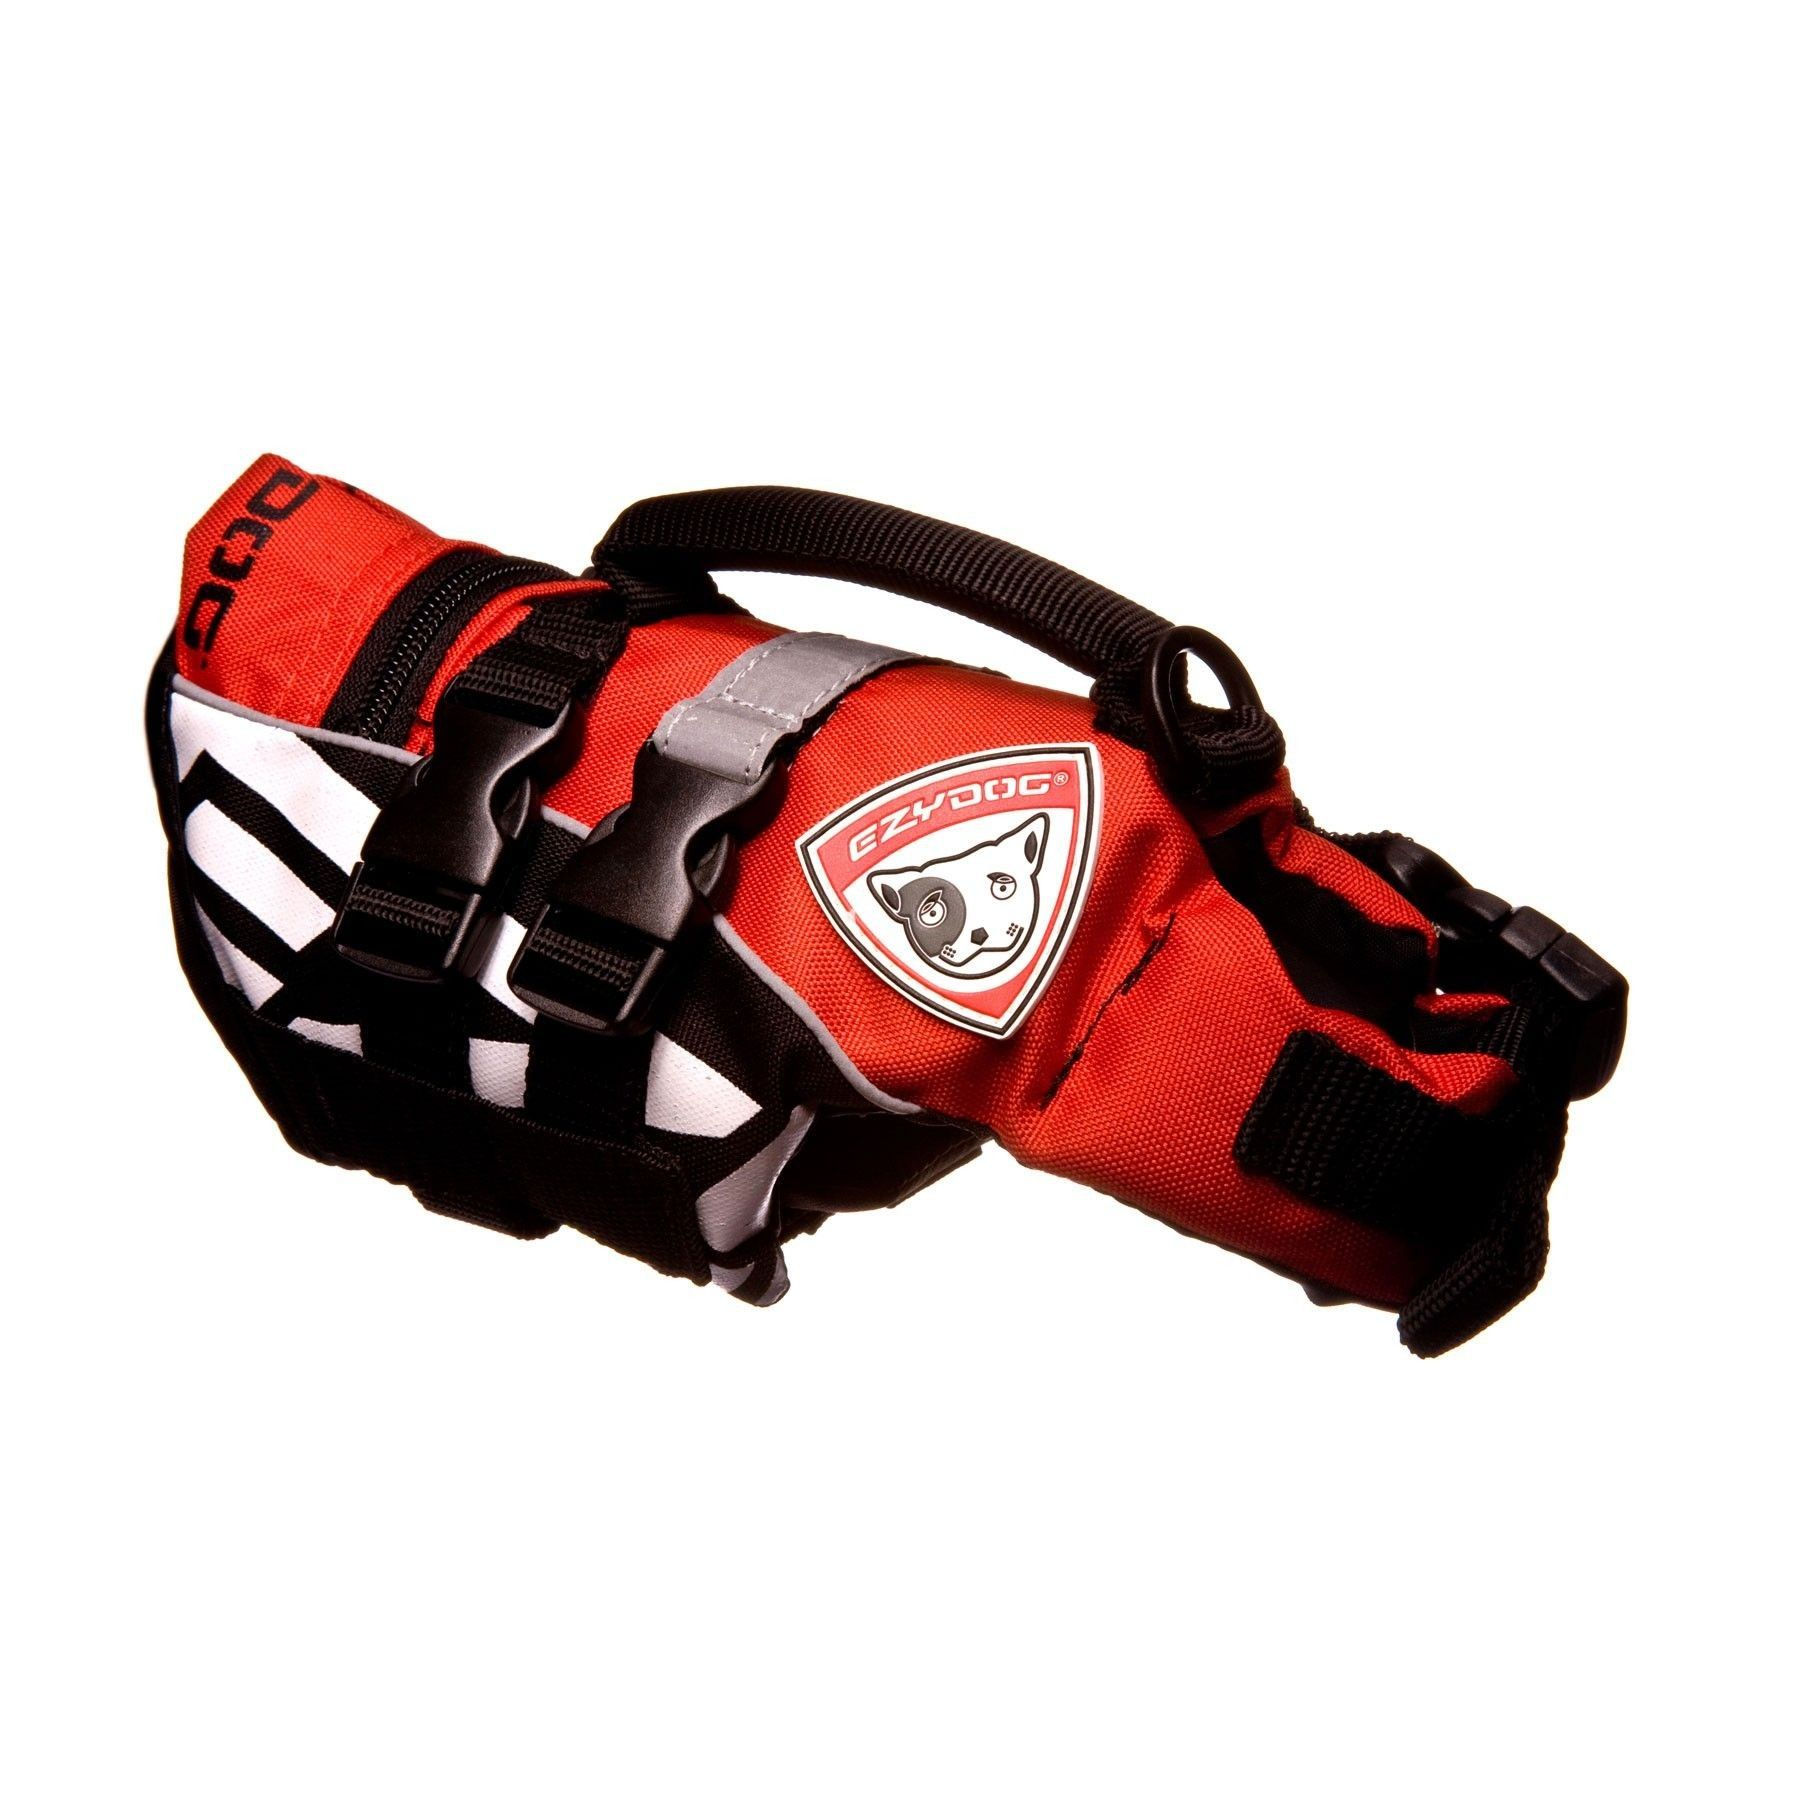 Micro DFD Dog Flotation Device